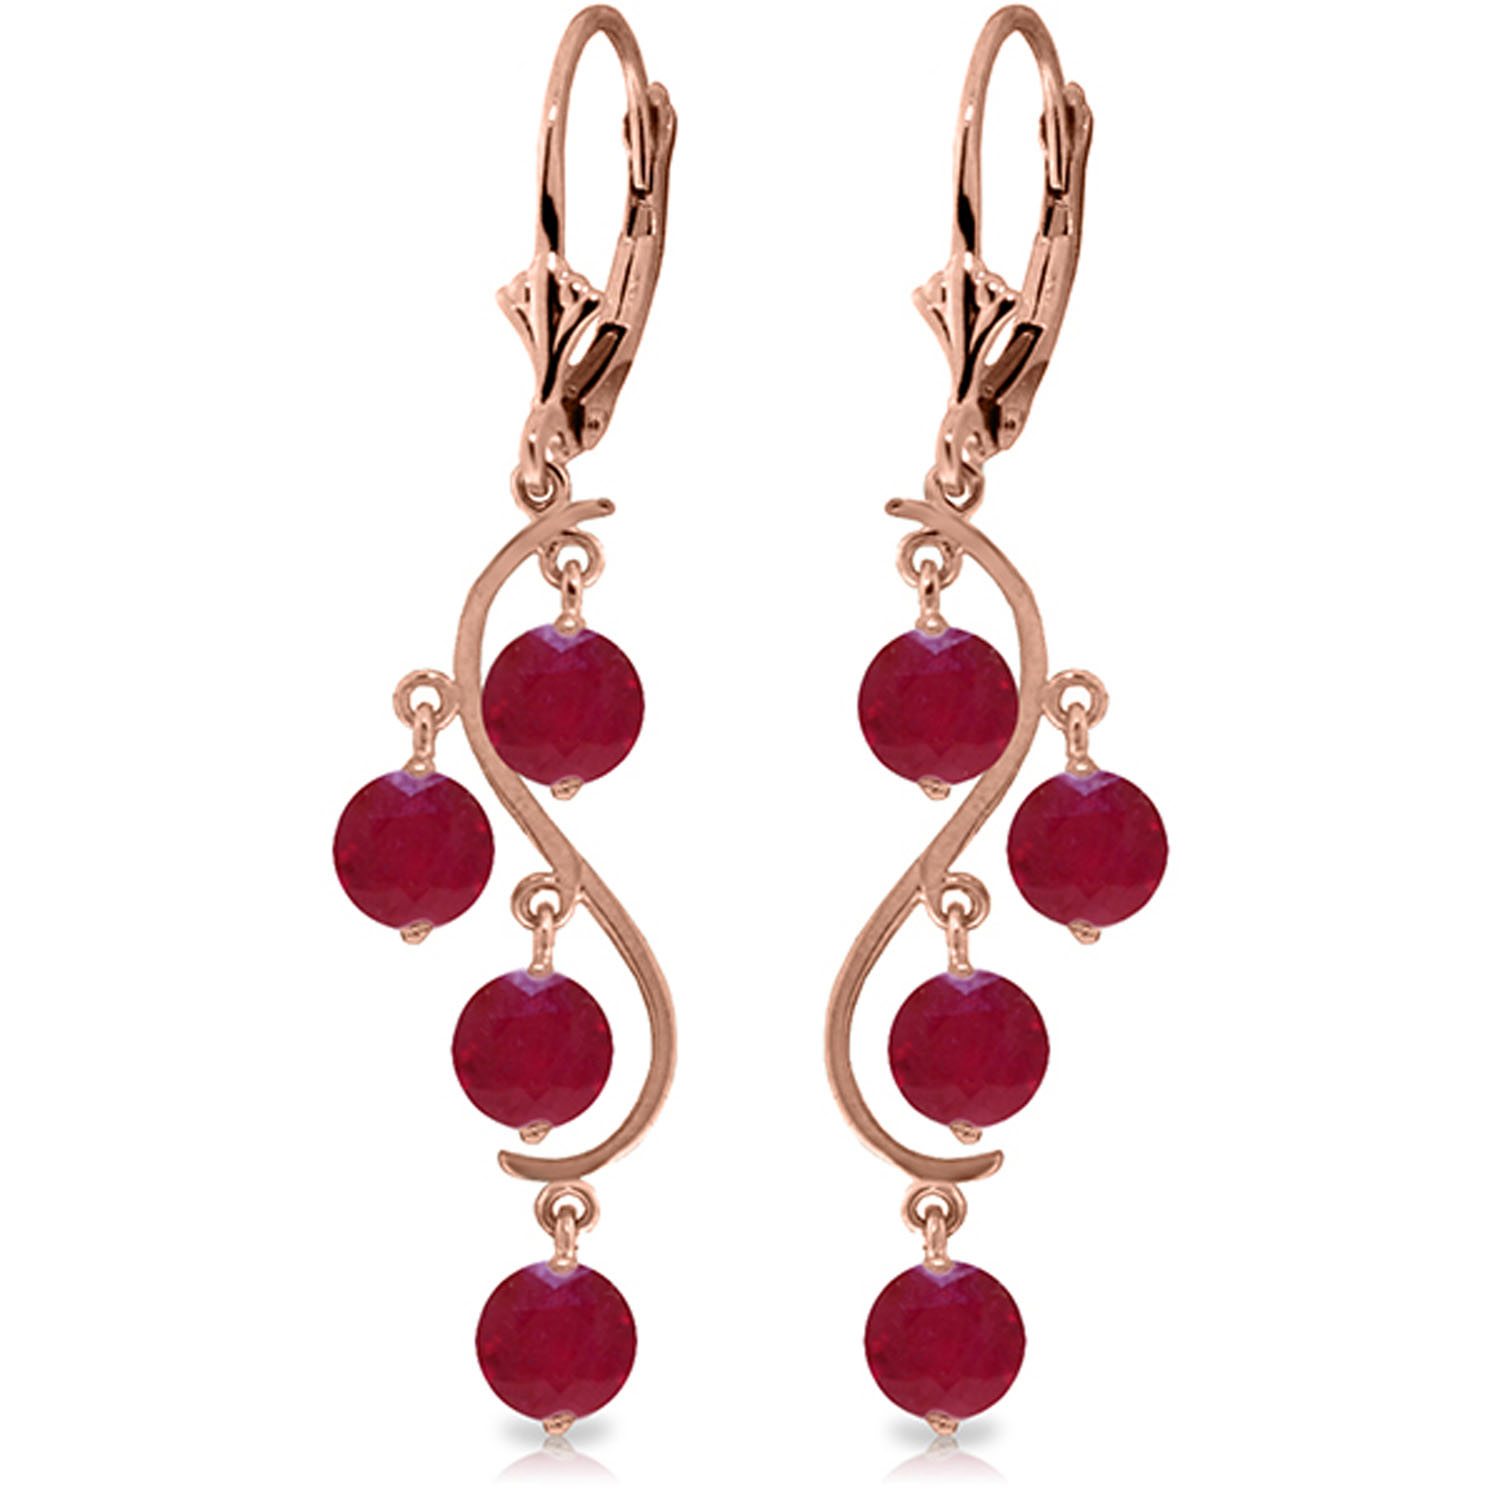 4 Carat 14K Solid Rose Gold Chandelier Earrings Natural Ruby